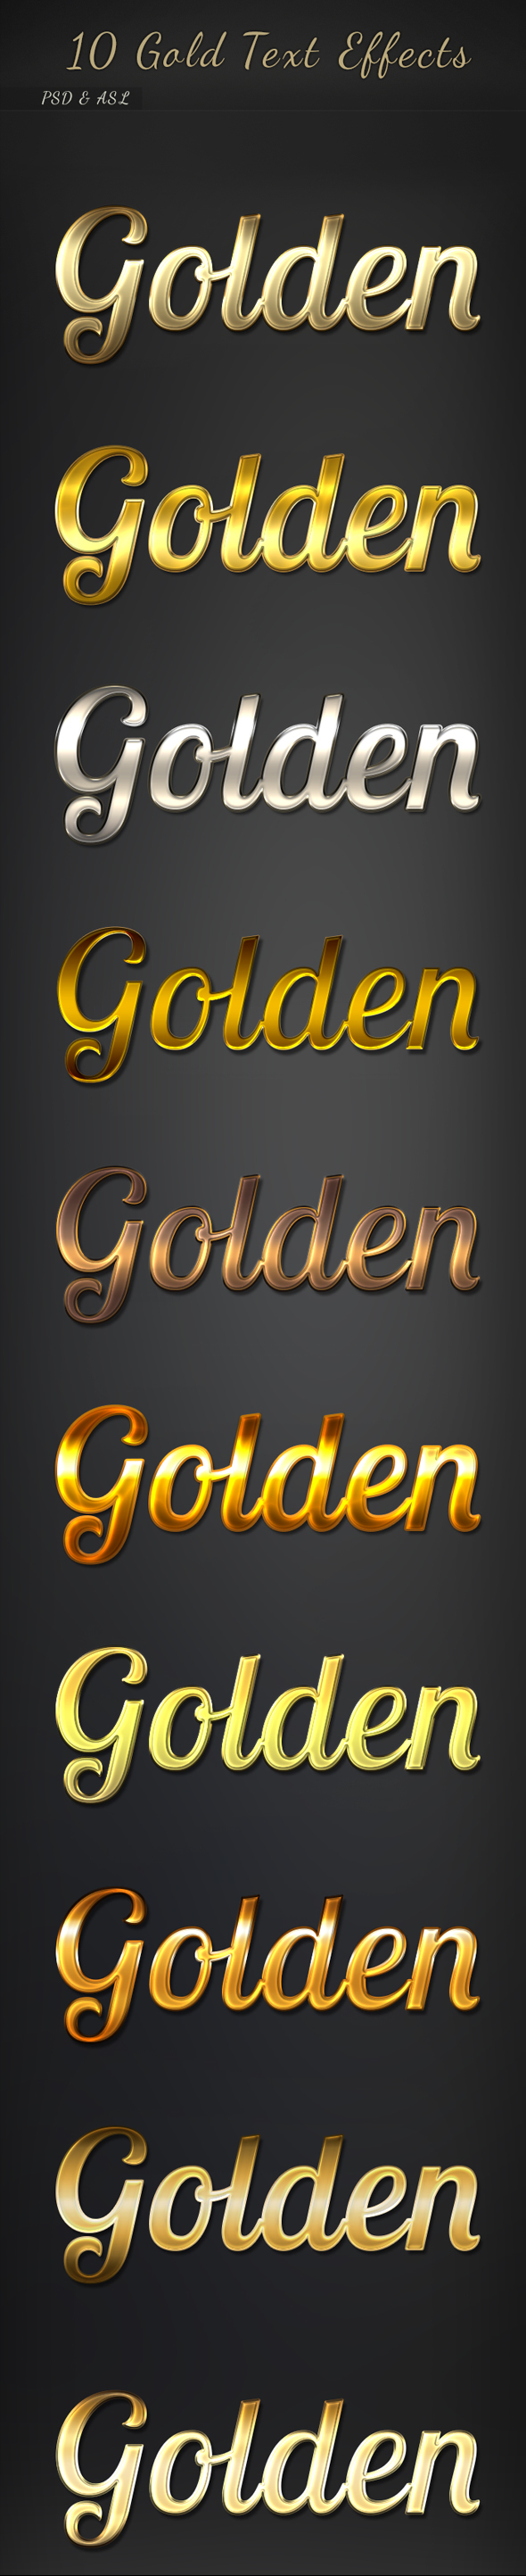 10 Gold Text Effects - Text Effects Styles